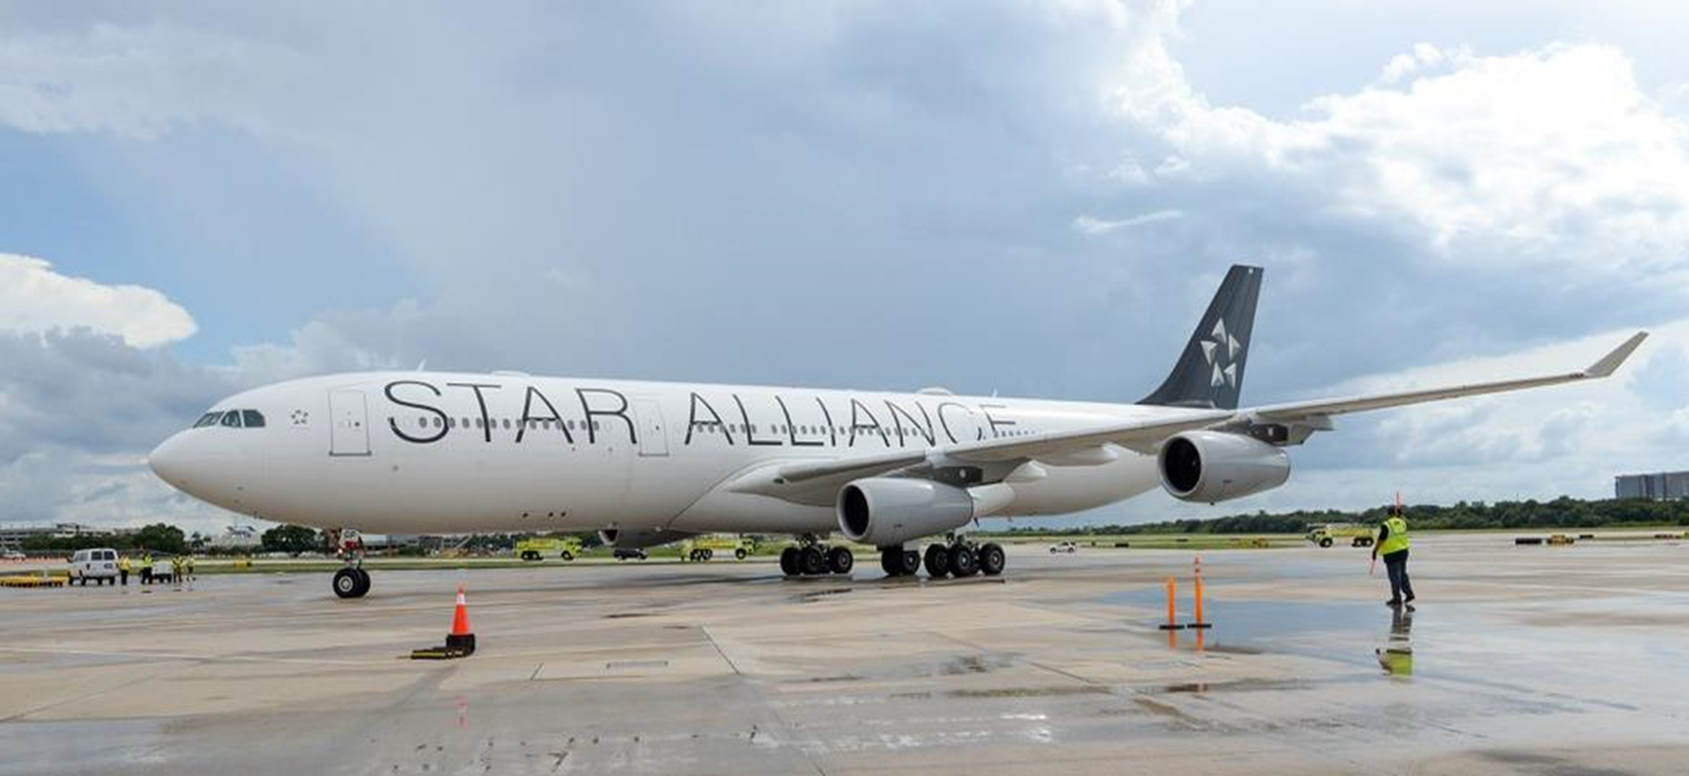 STAR ALLIANCE AIR CHINA AND BEIJING CAPITAL INTERNATIONAL AIRPORT AGREE JOINT COOPERATION